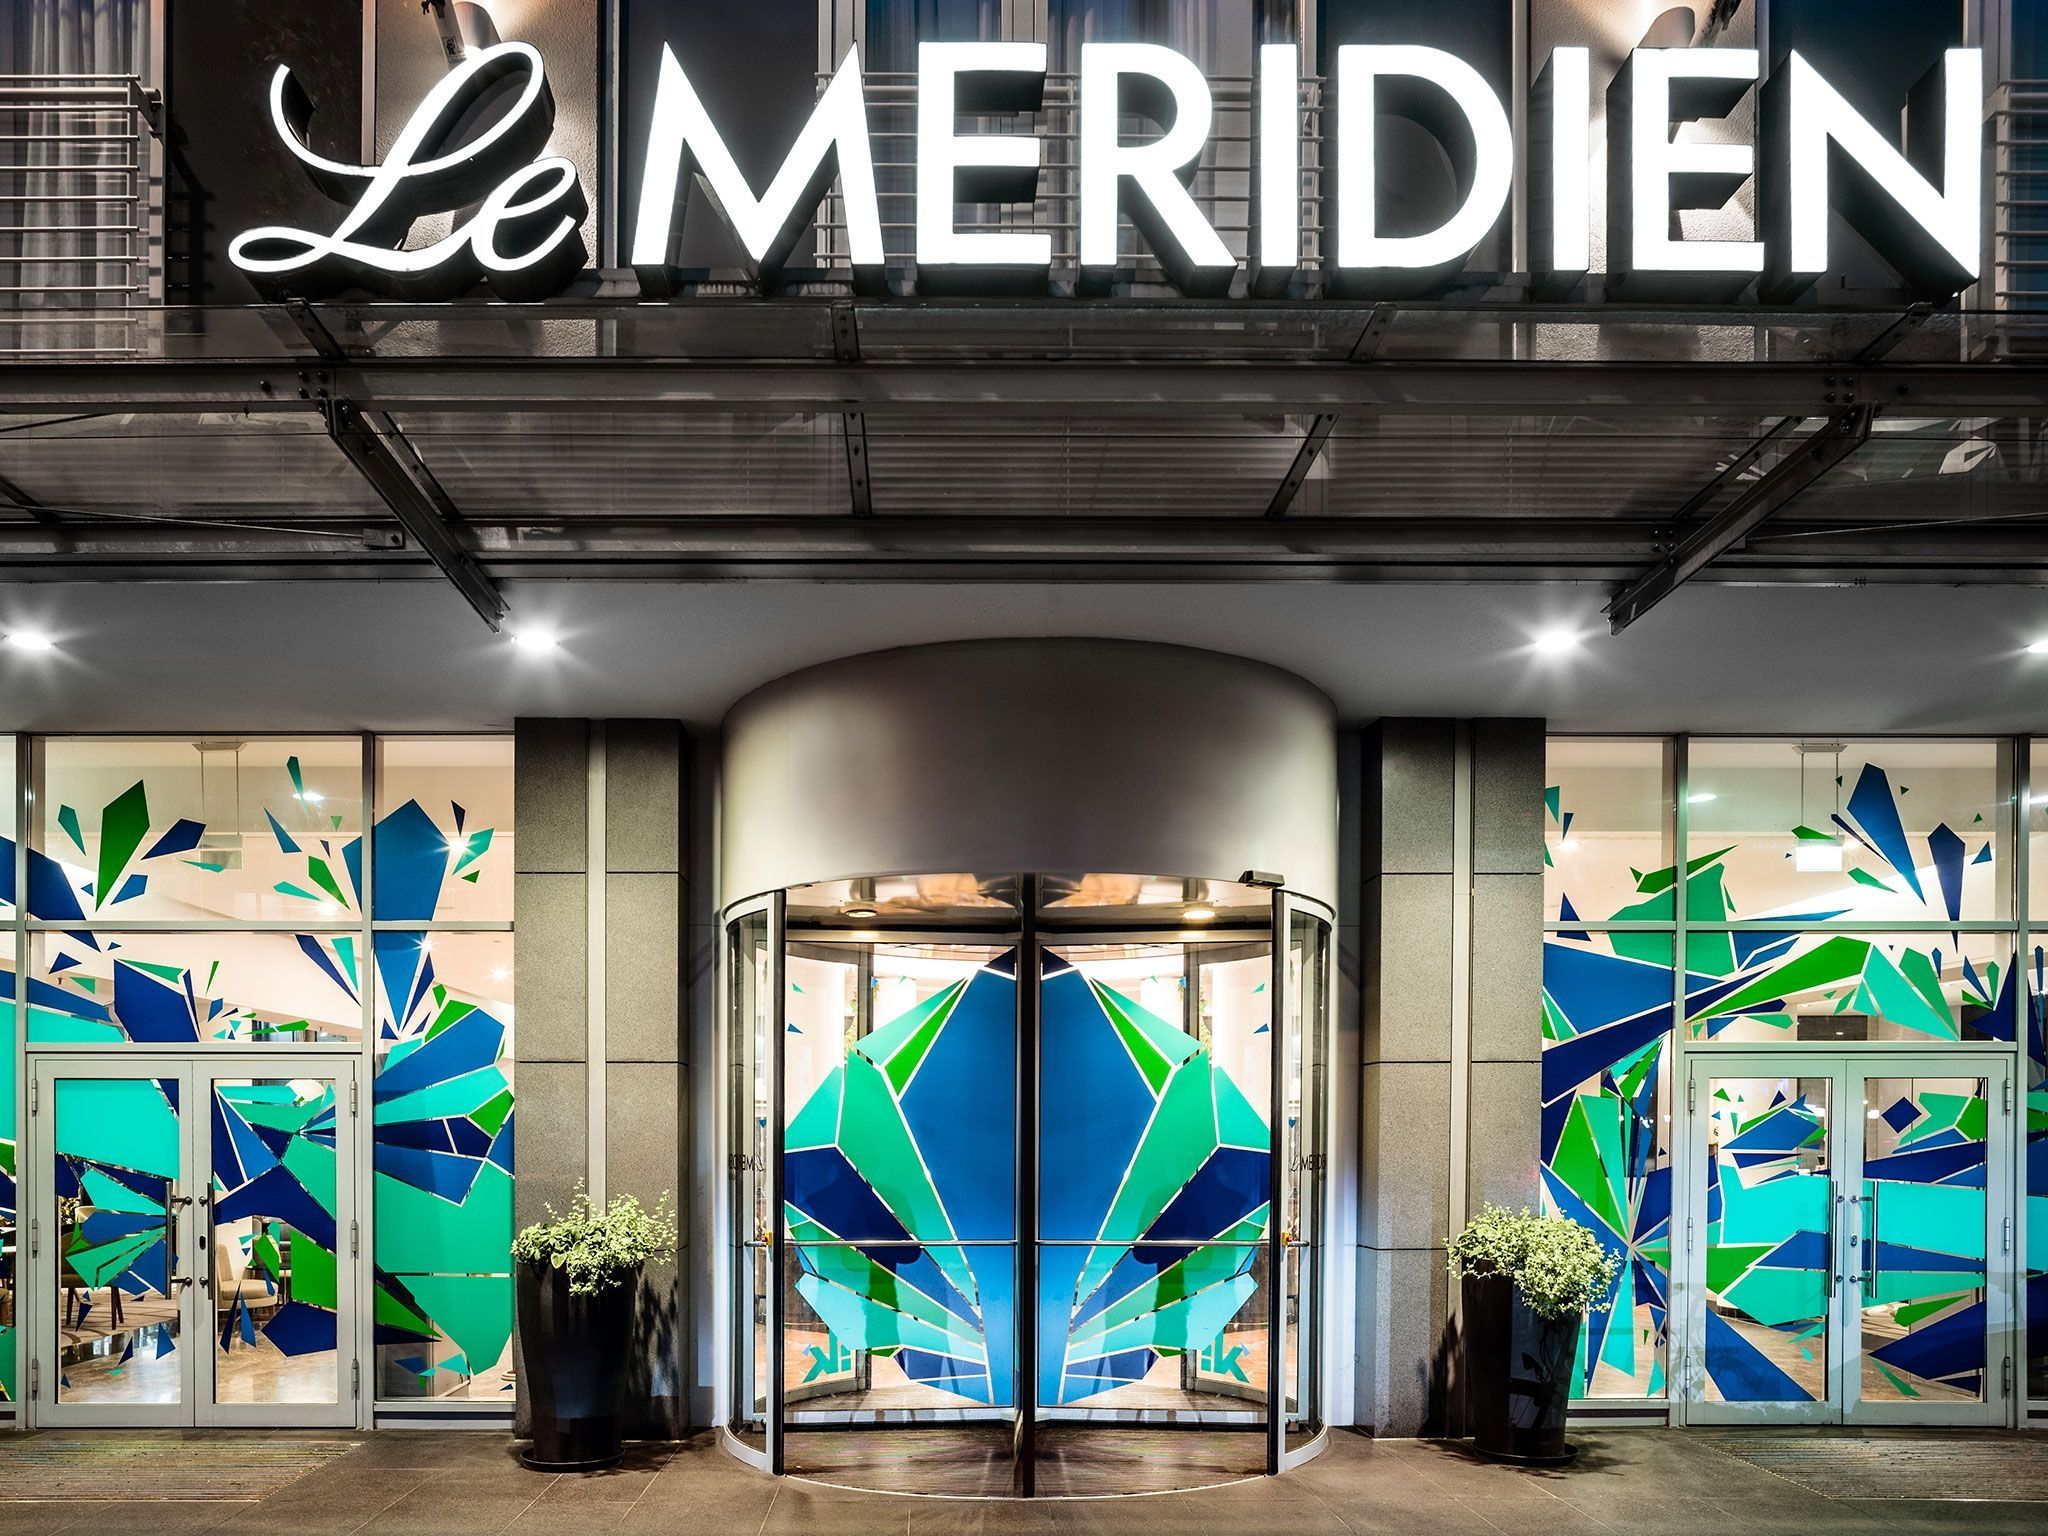 Le Méridien Munich hotel entrance